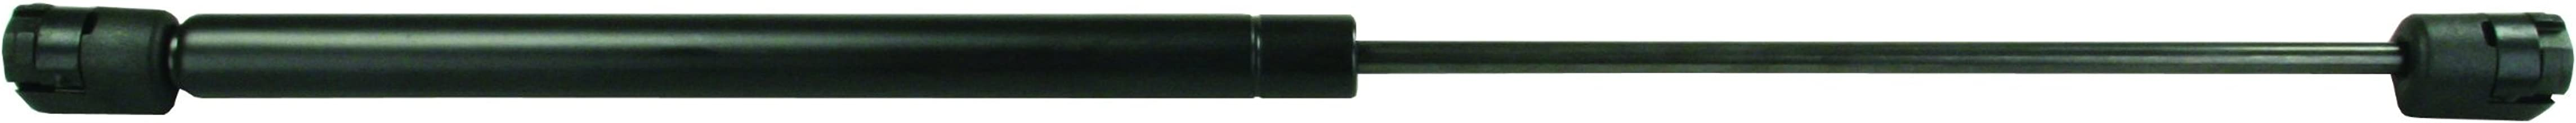 JR Products GSNI-2300-120 Gas Spring